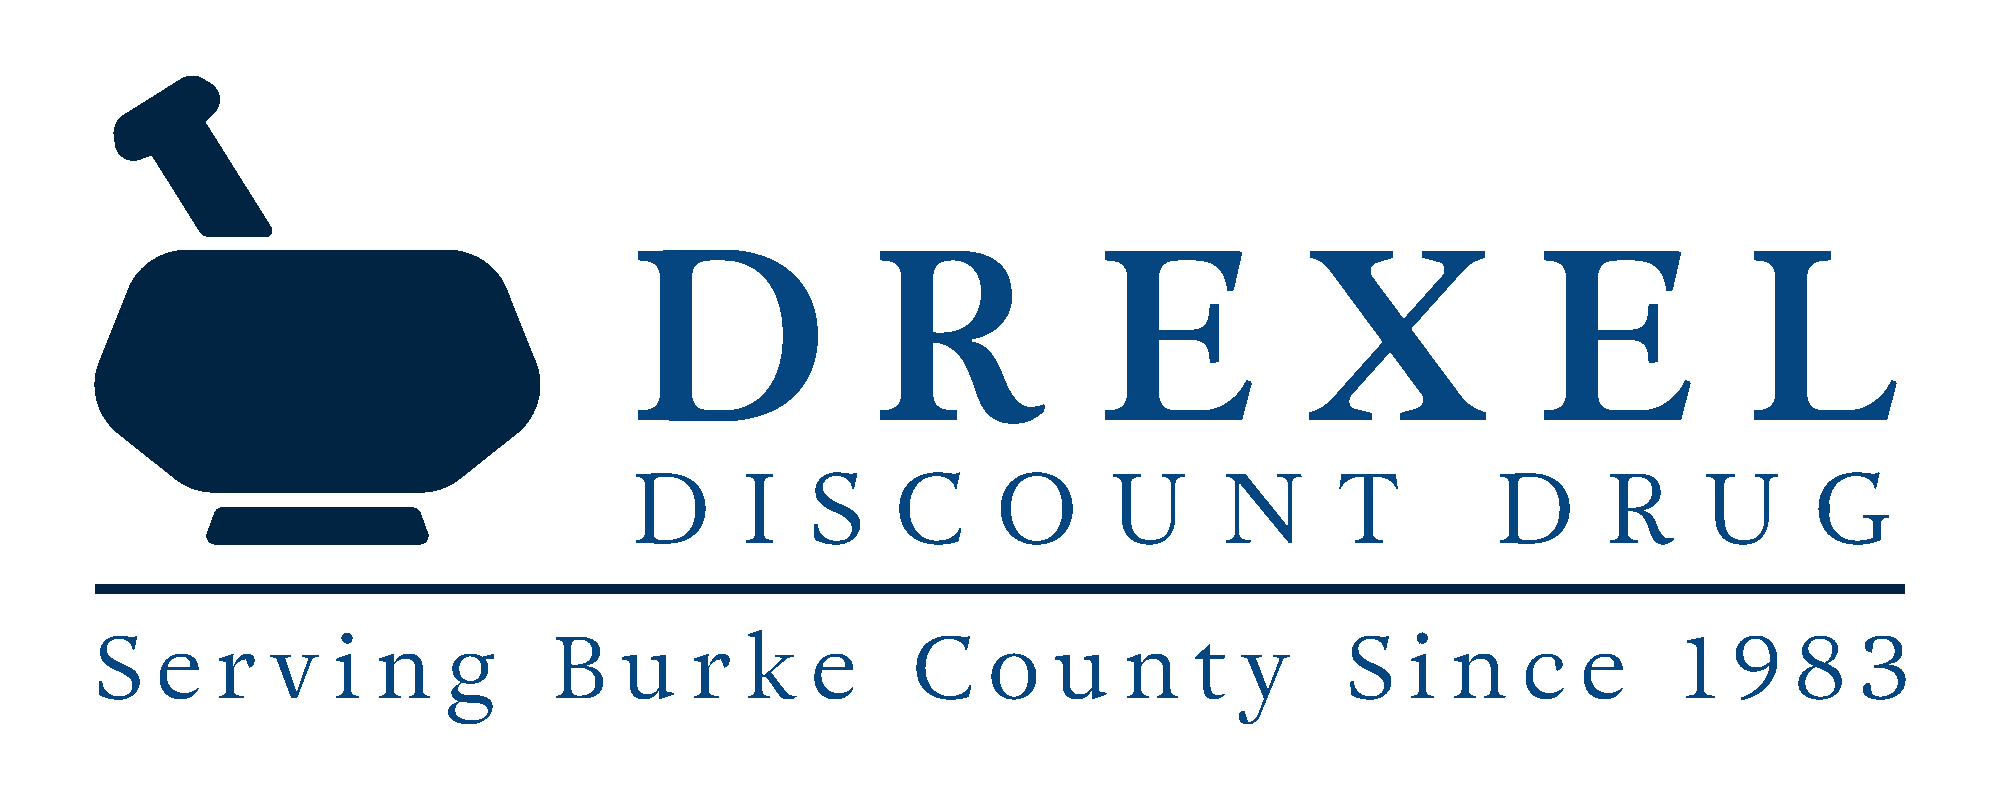 New - New - Drexel Discount Drug